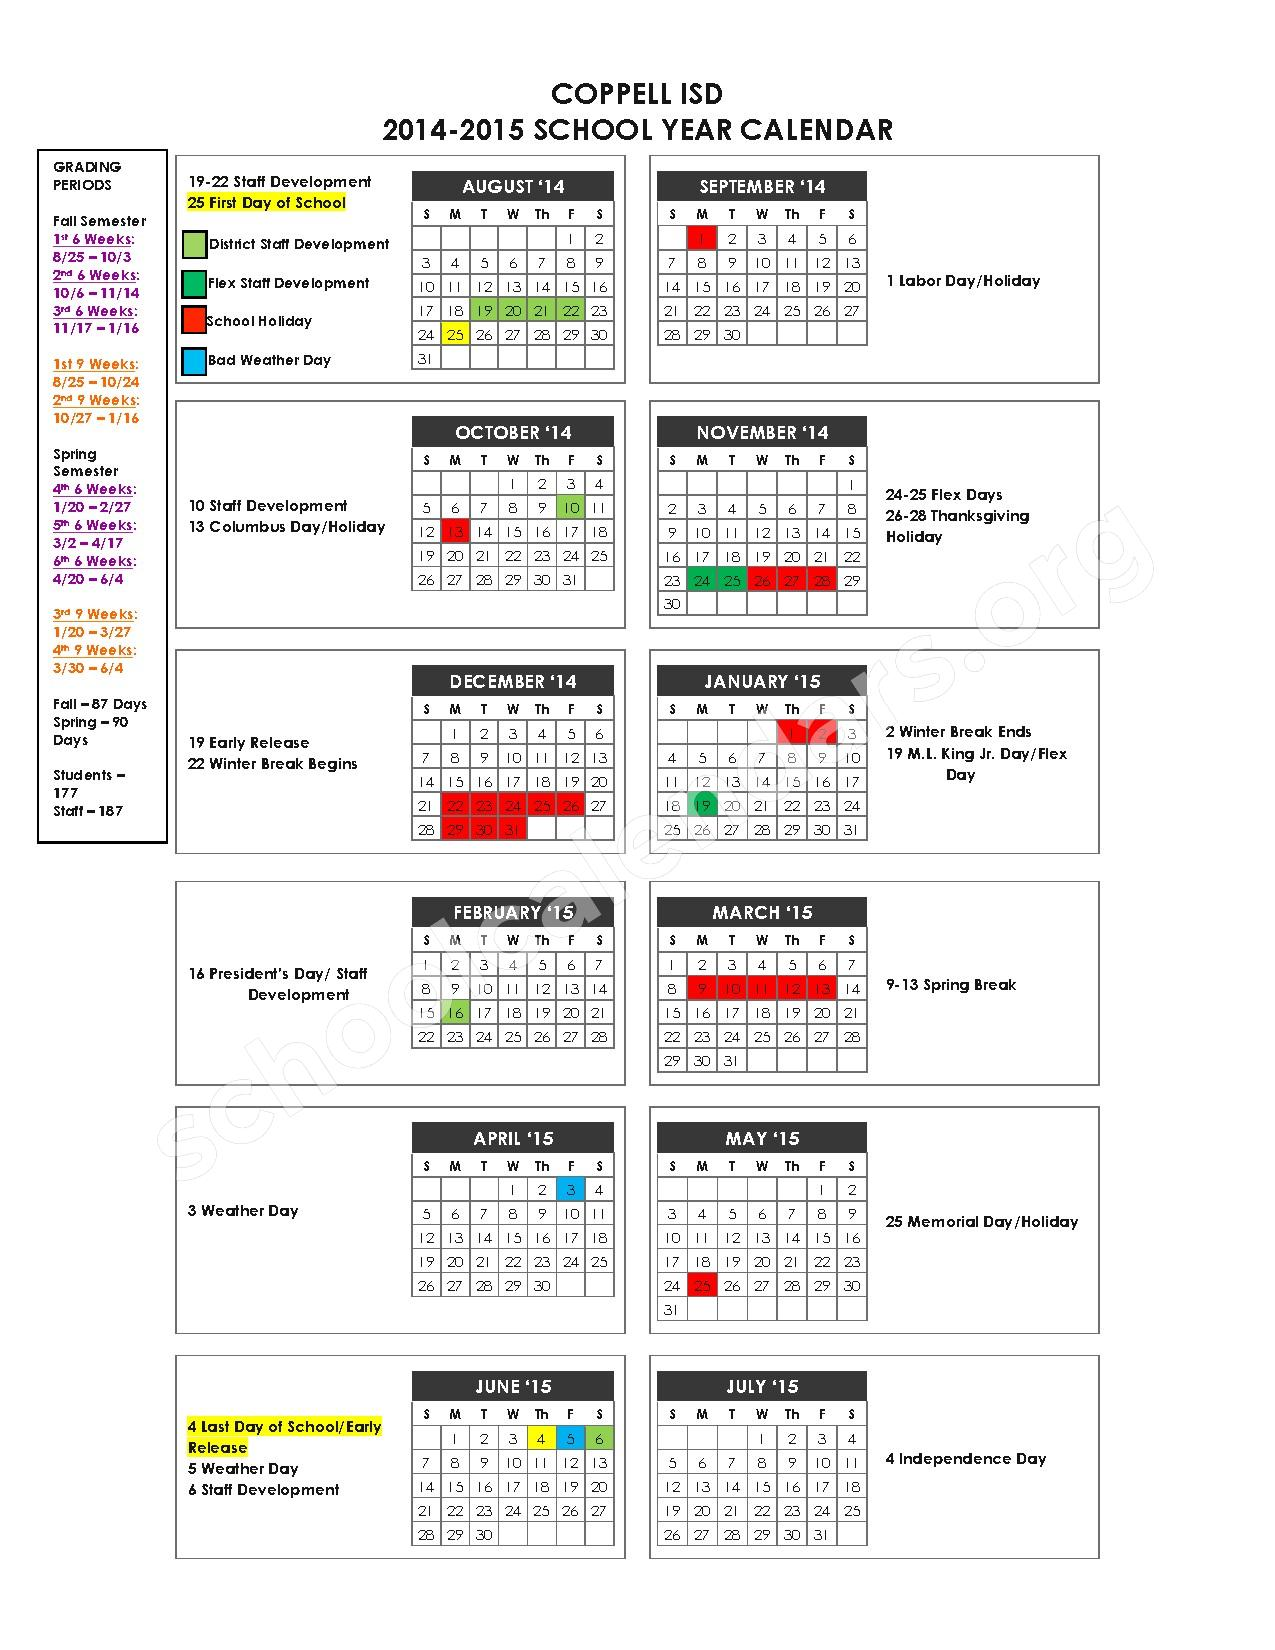 coppell isd calendar 2015 2016 Music Search Engine at Search